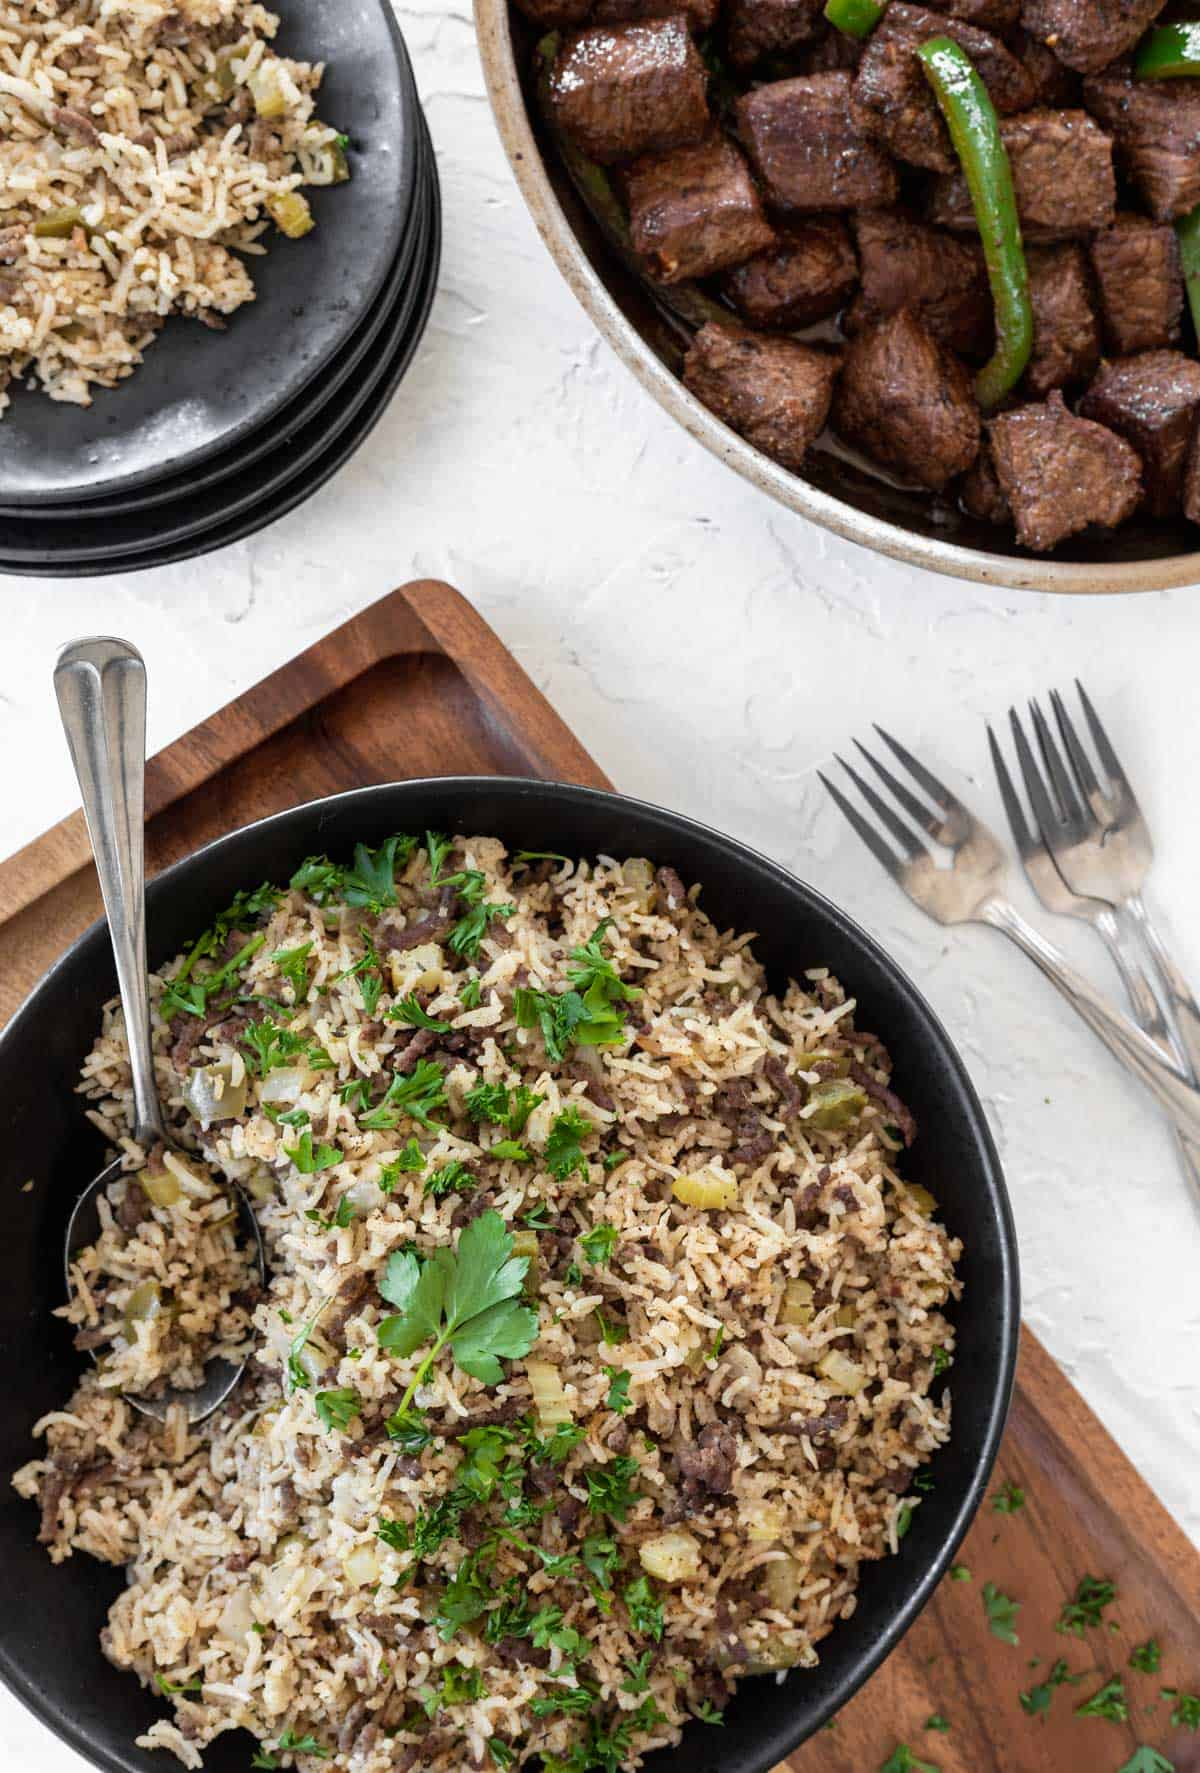 Instant pot dirty rice in a bowl with a serving spoon, a black plate with some rice on it, and a skillet of cajun steak bites off to the side.